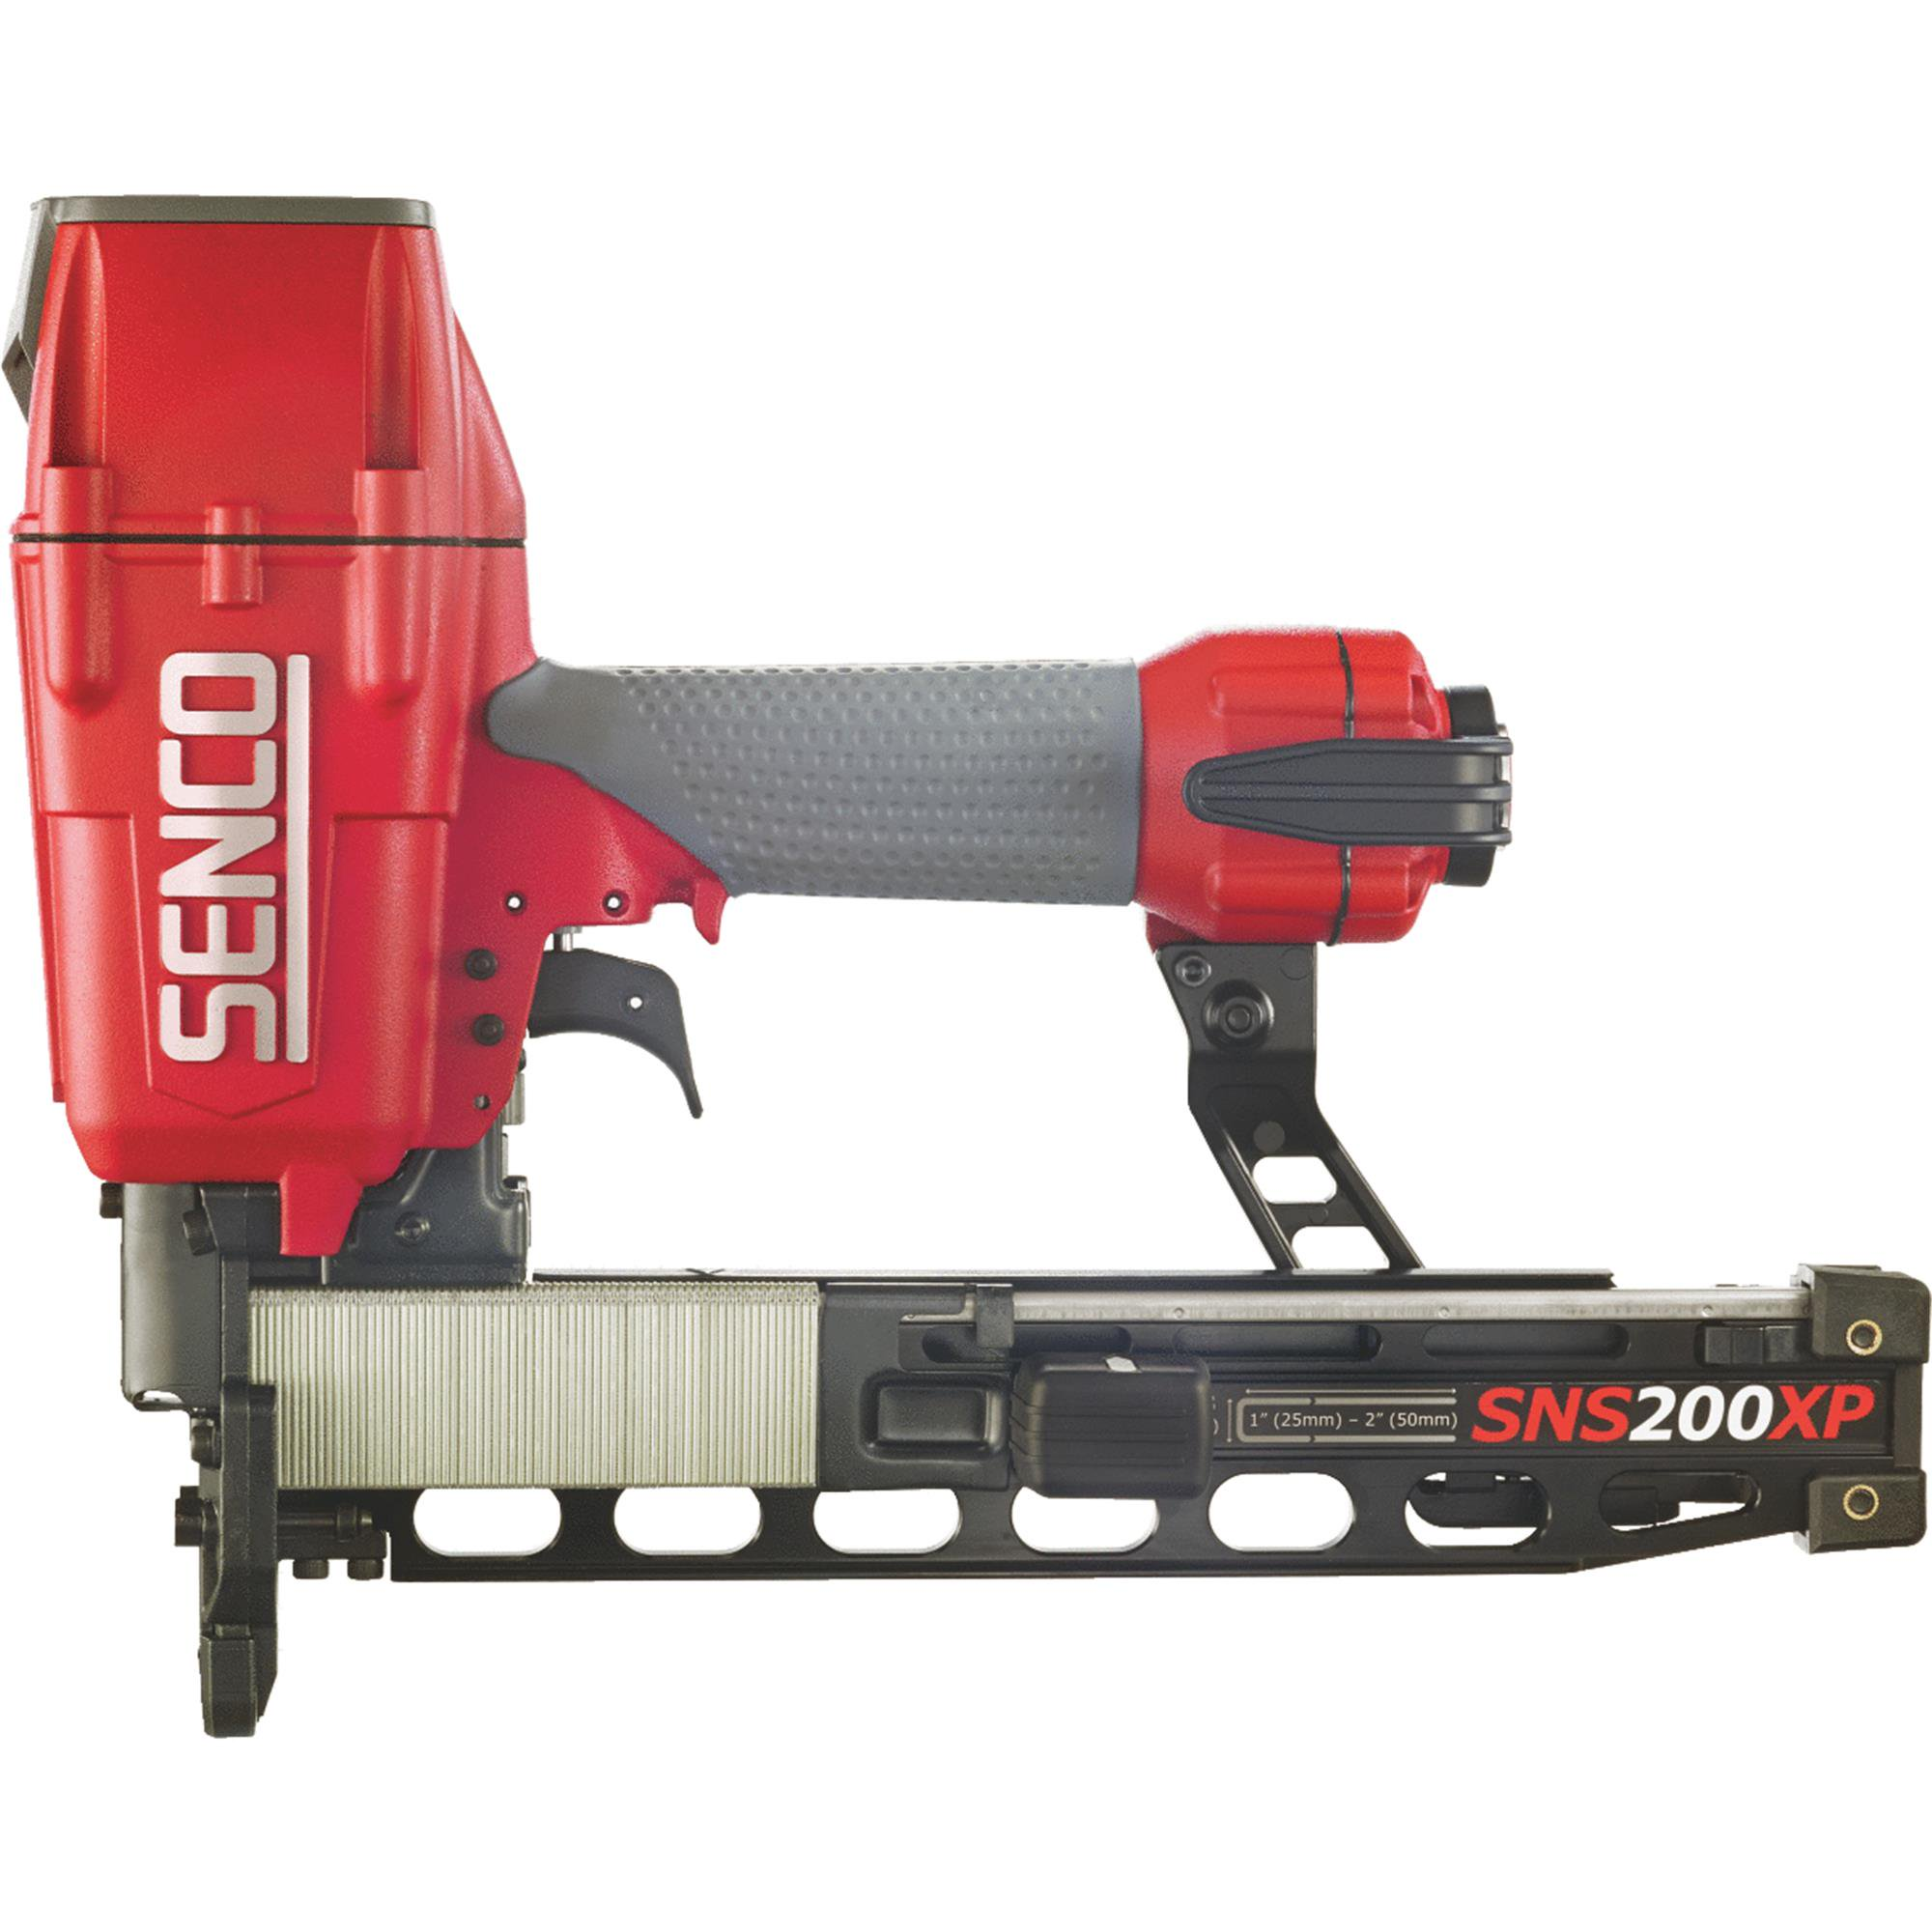 SENCO SNS200XP-BST Construction Air Stapler